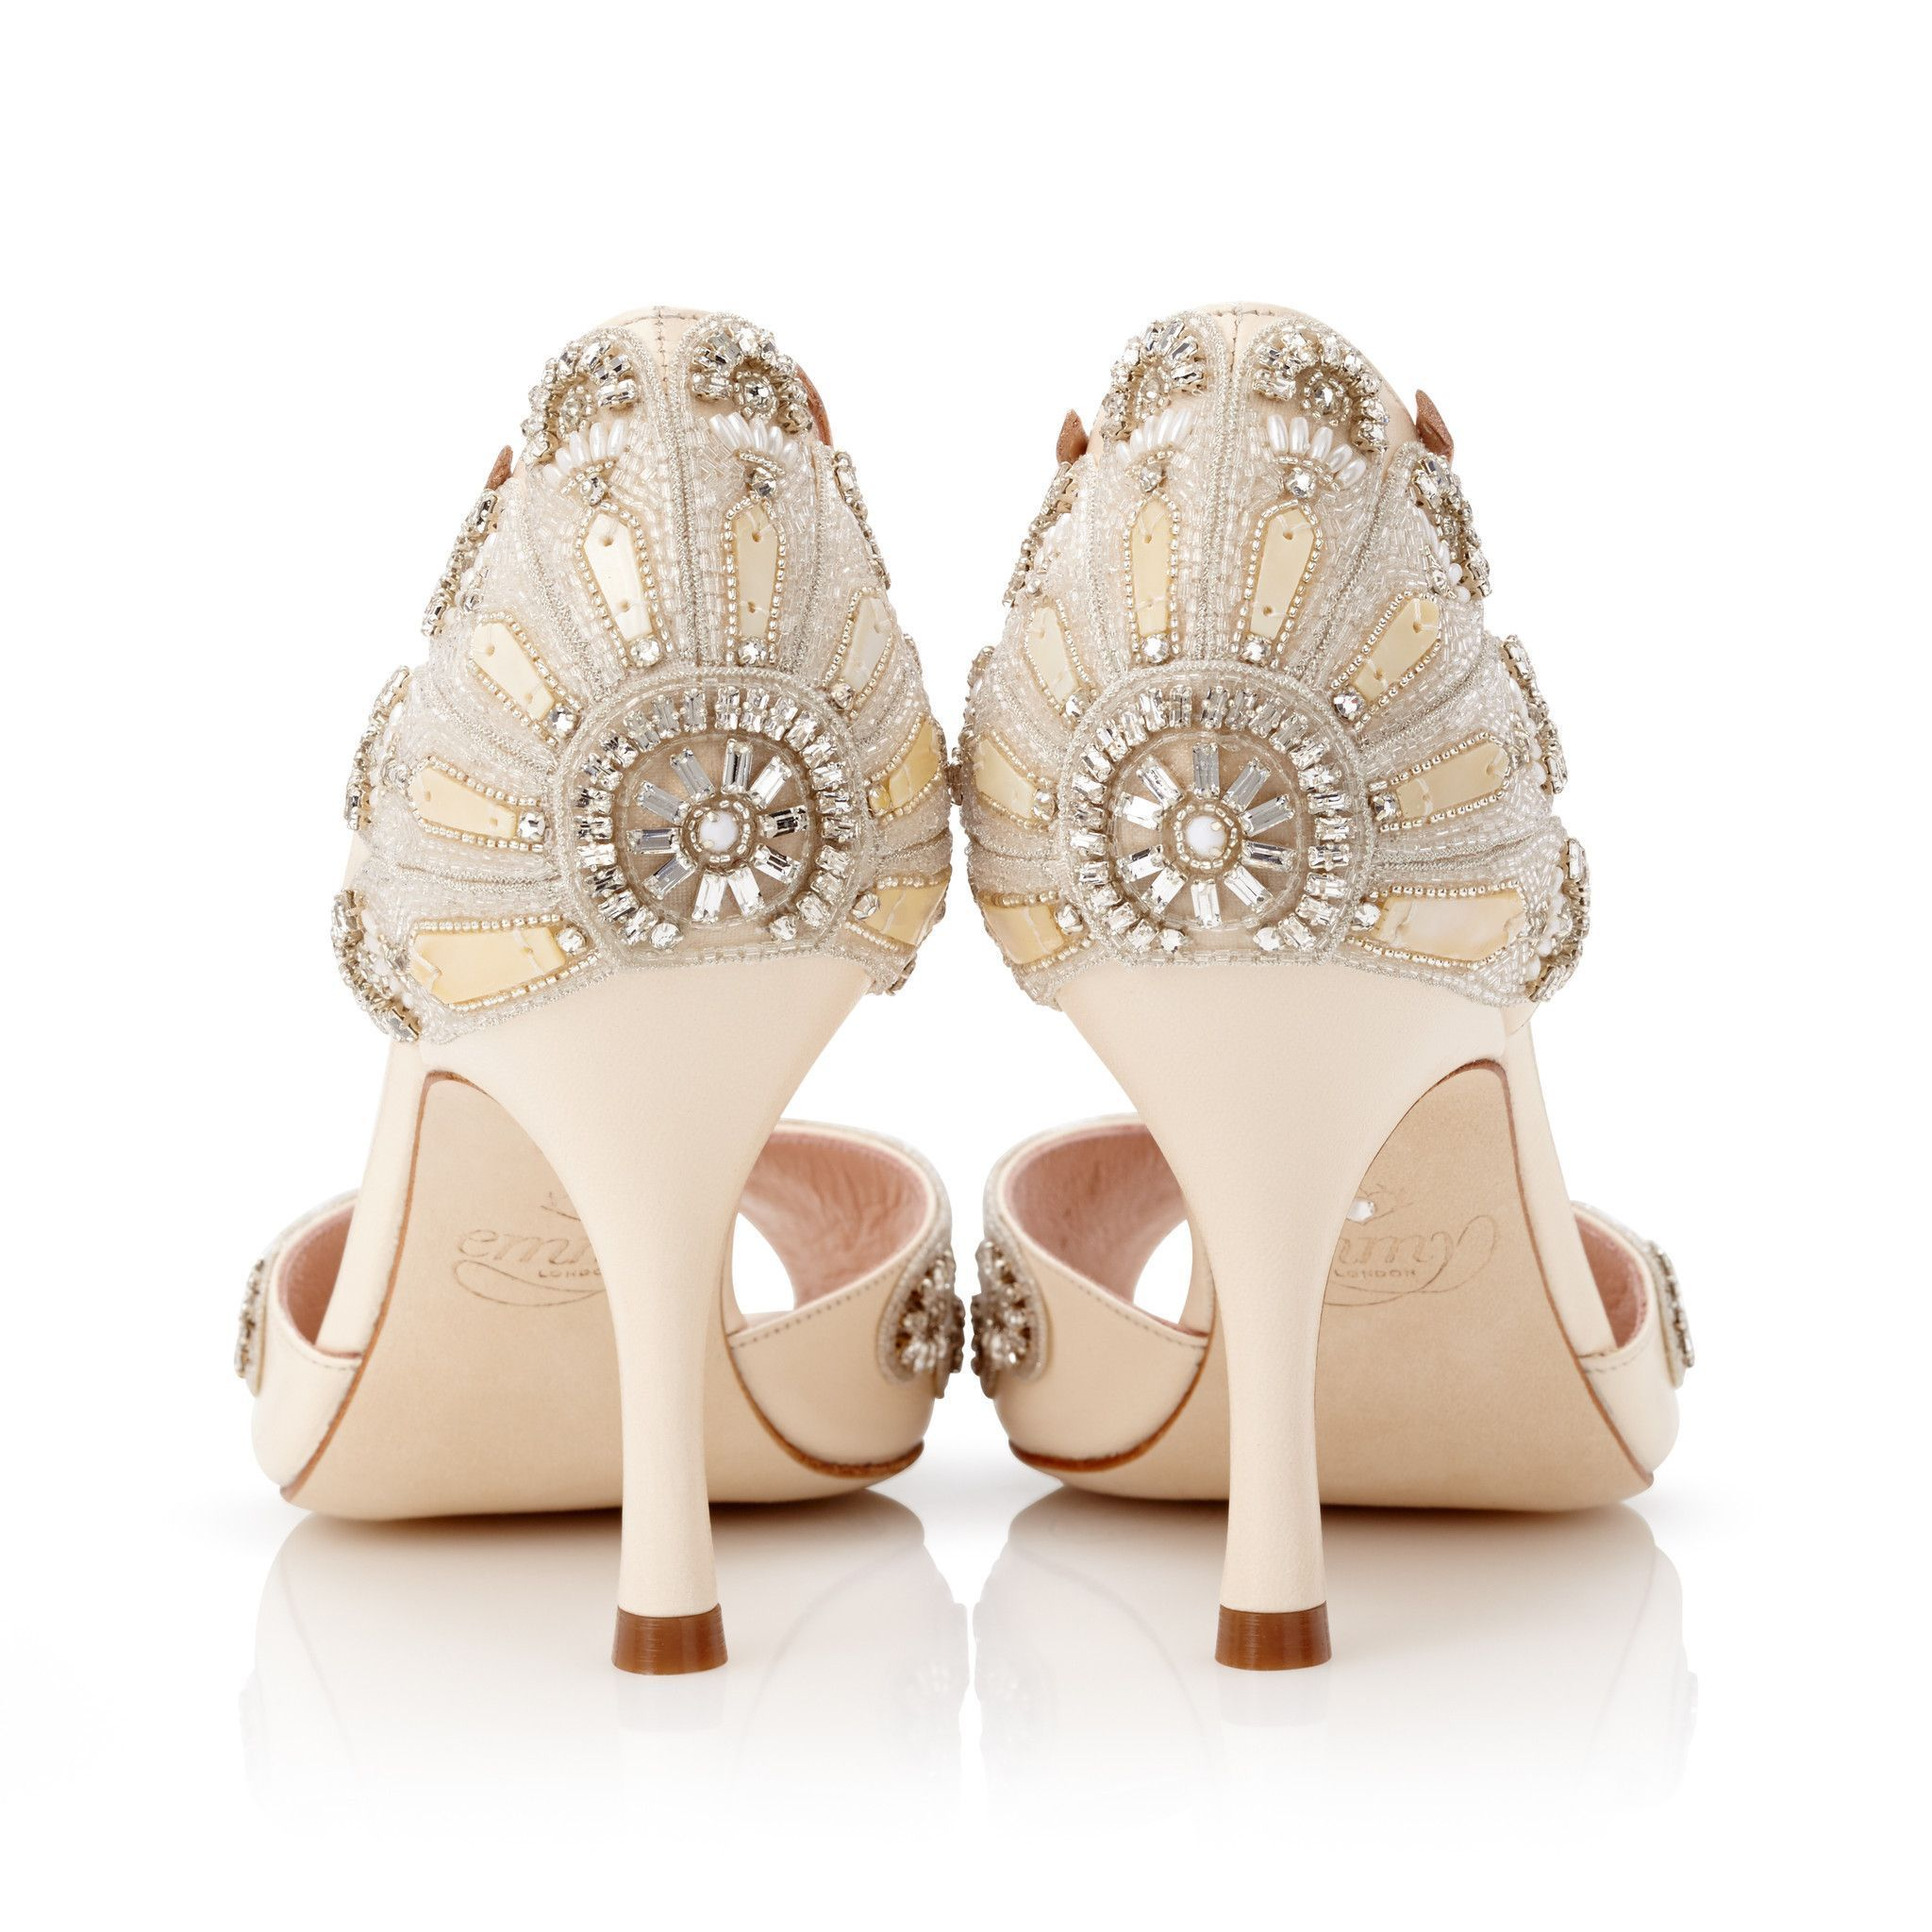 df1e12e3e Wedding shoes · The Francesca Mid is a wonderful mid-heeled style of our  Art Deco inspired Francesca